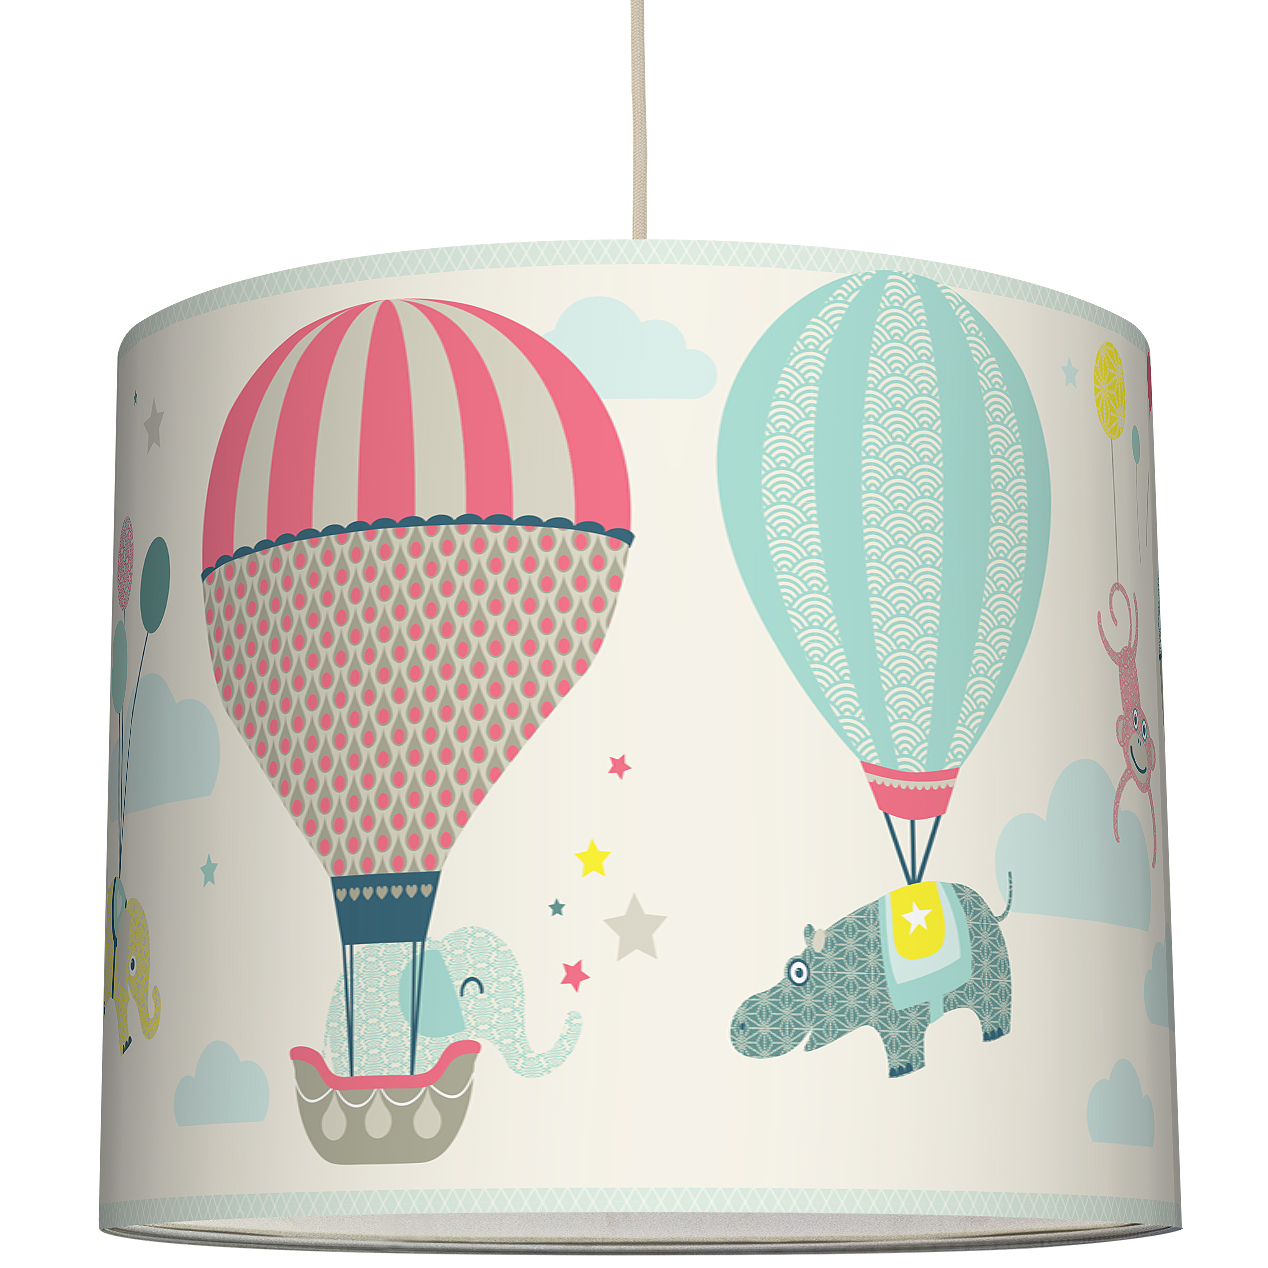 5061_40_Lampenschirm_Hot_Air_Balloon_40cm_anna_wand_design_Kinderzimmer_dekorieren